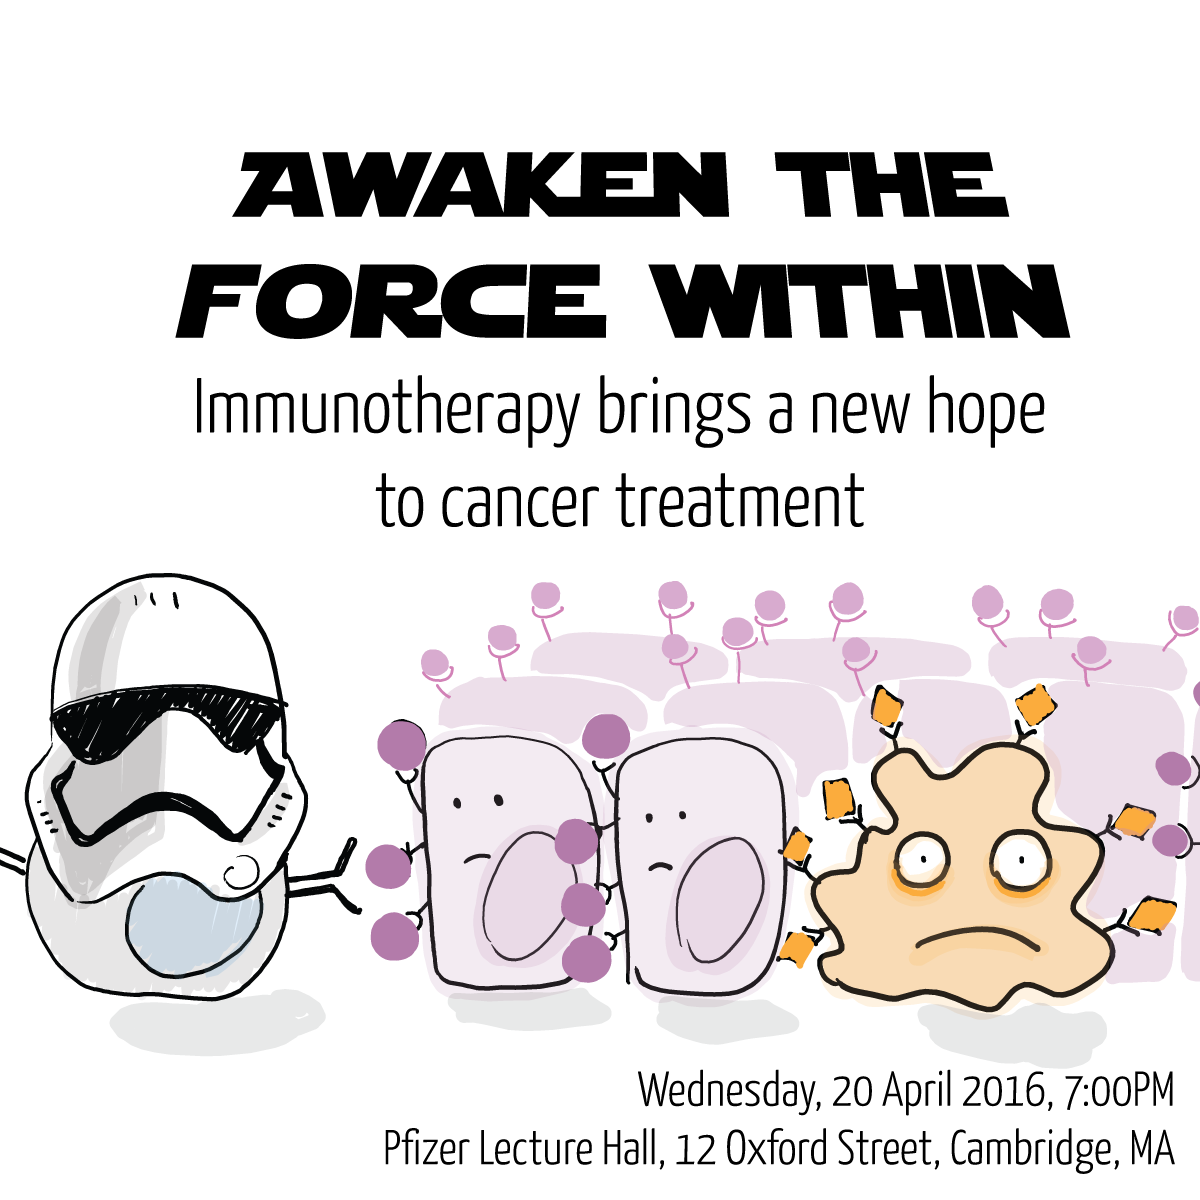 Free Science Seminar Quot Awaken The Force Within